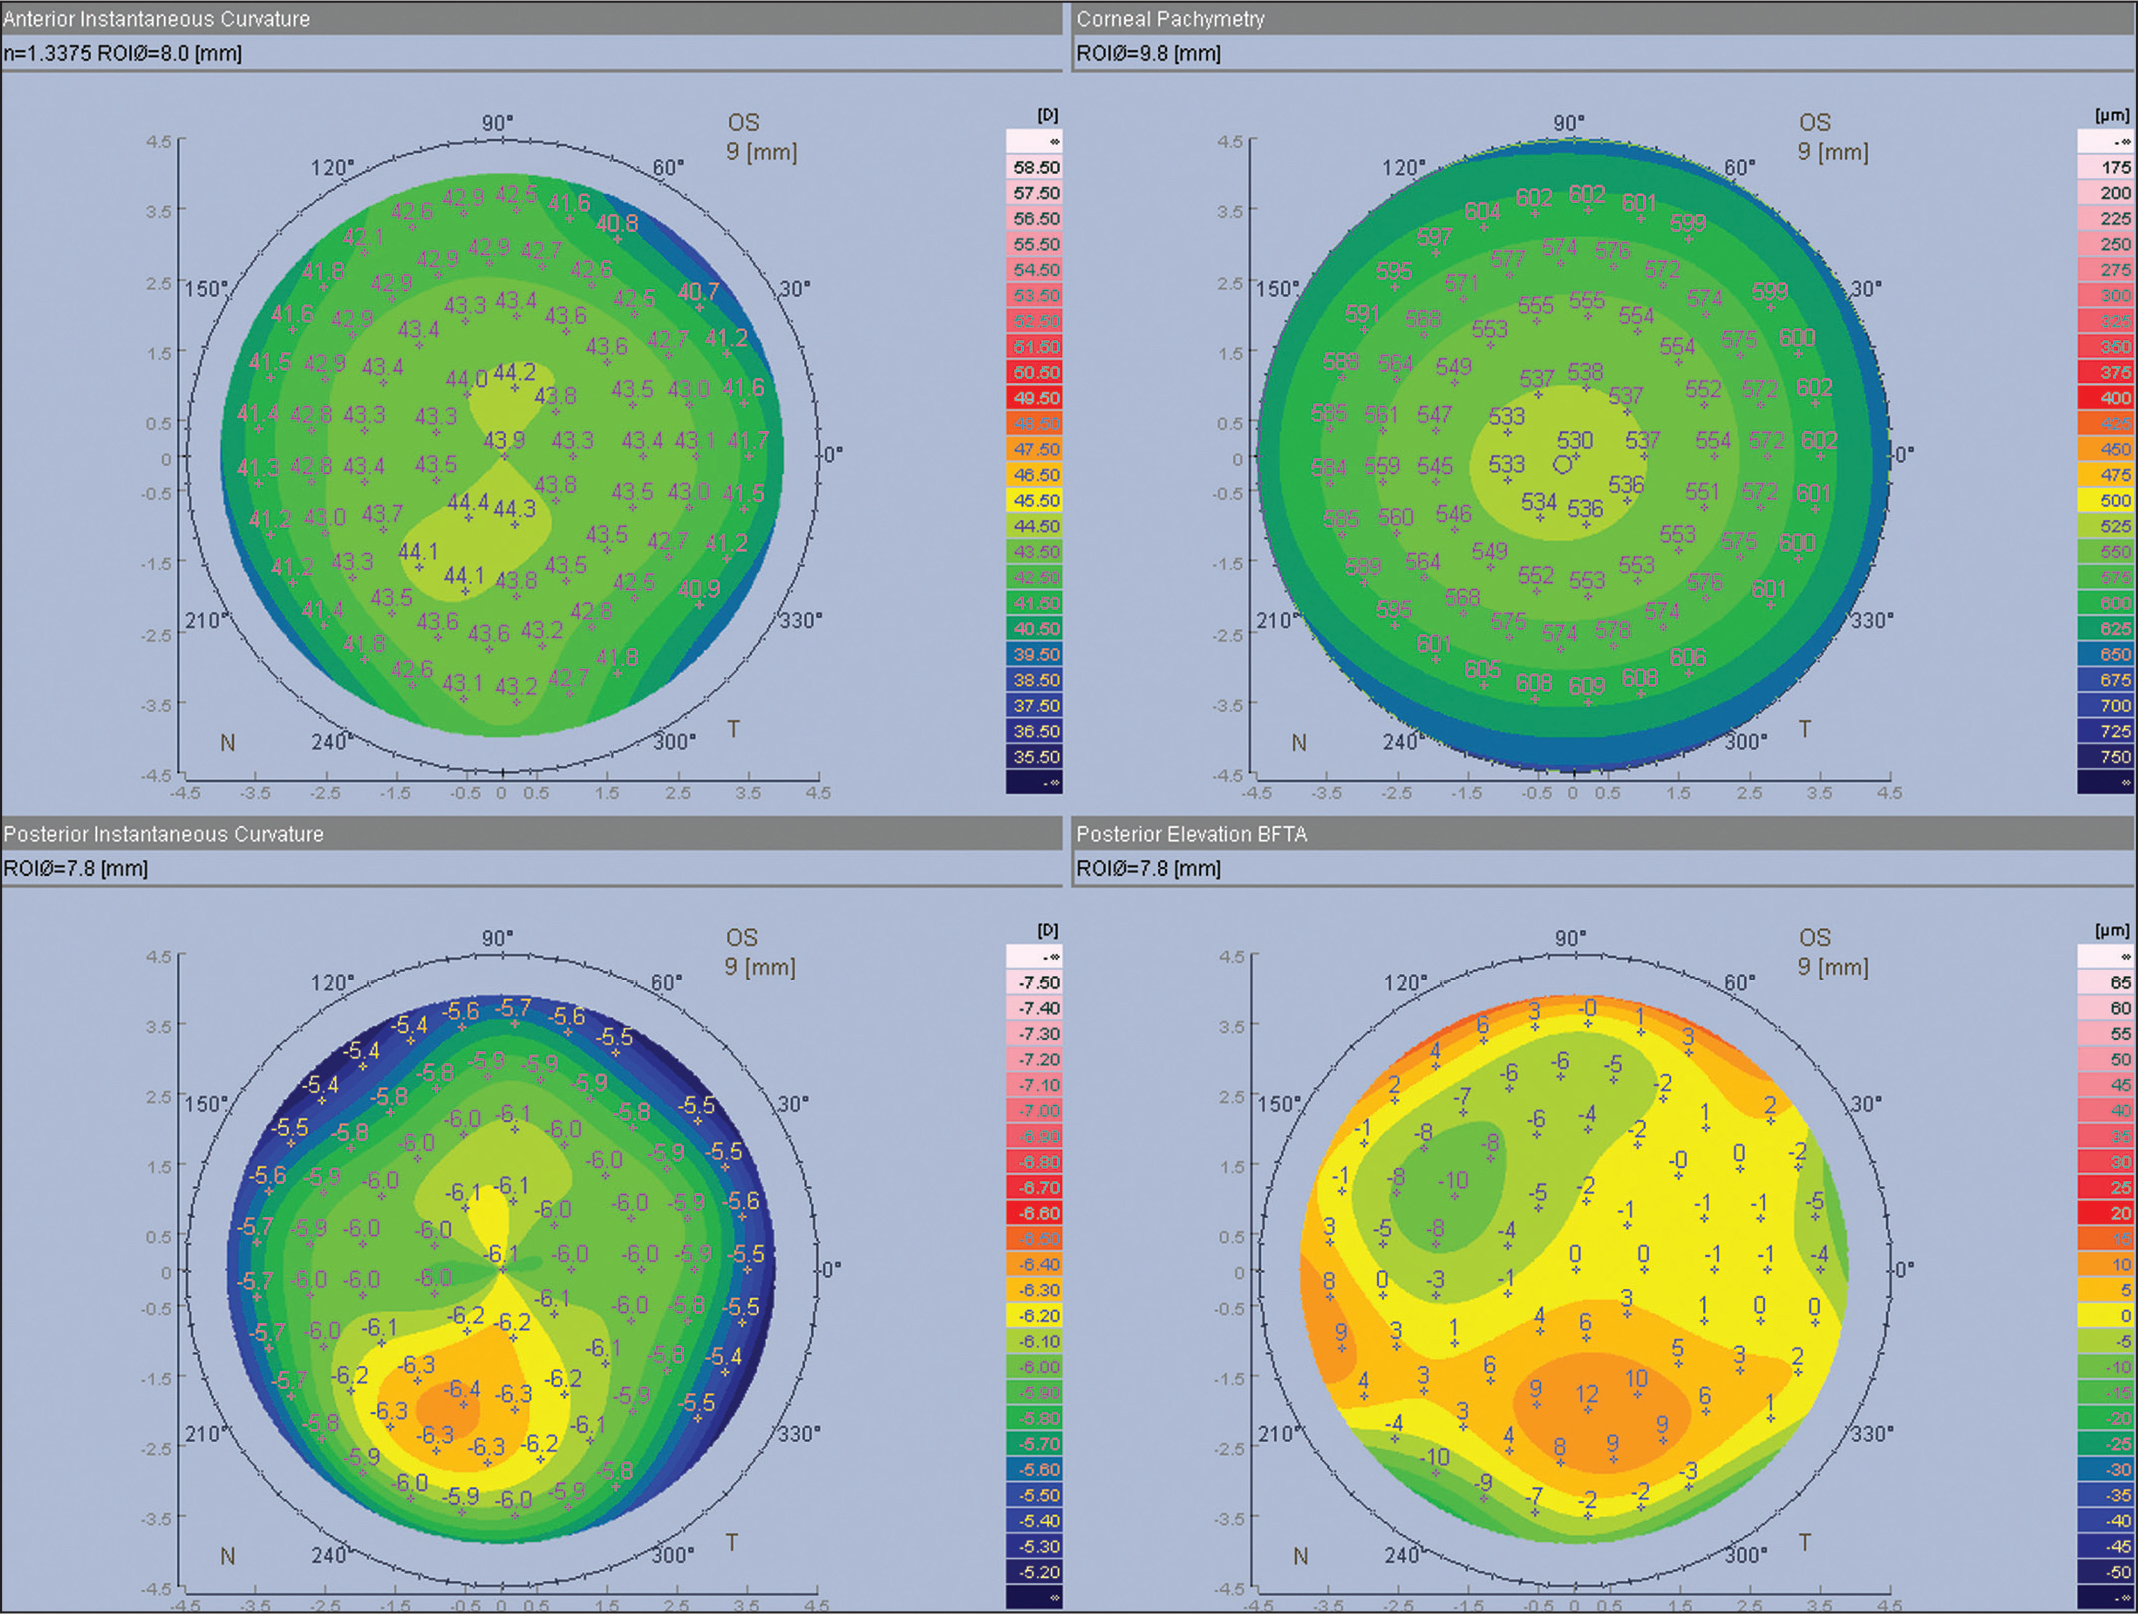 An example of a 4-screen display showing normal features of the anterior curvature map.